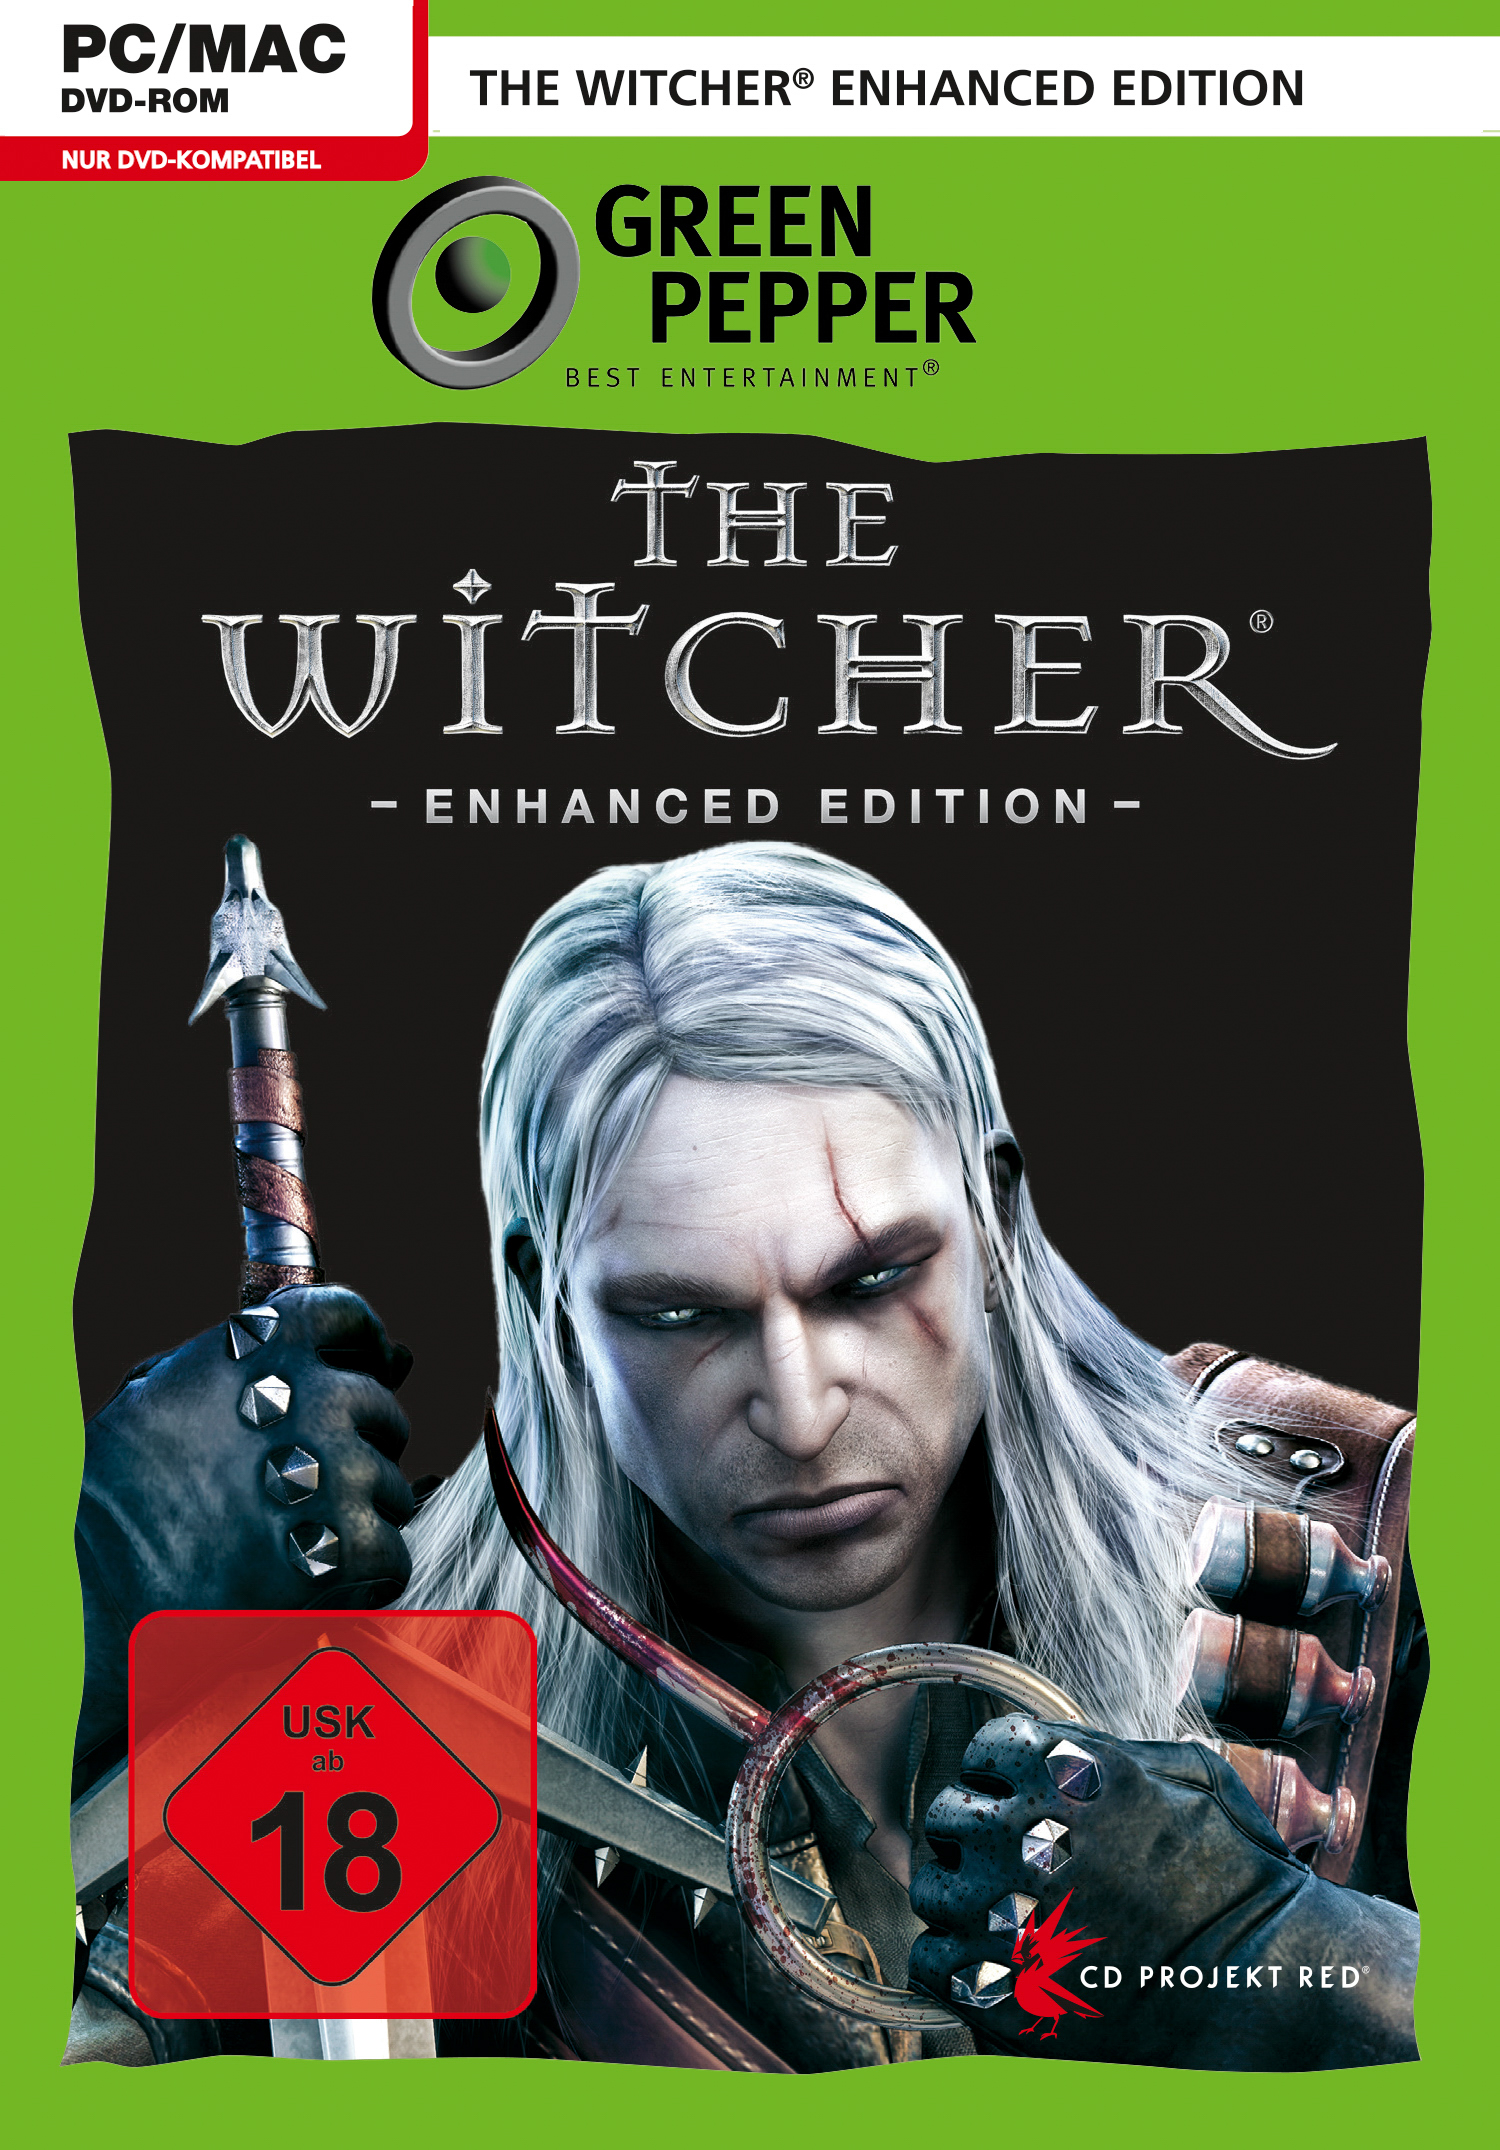 The Witcher - Enhanced Edtion